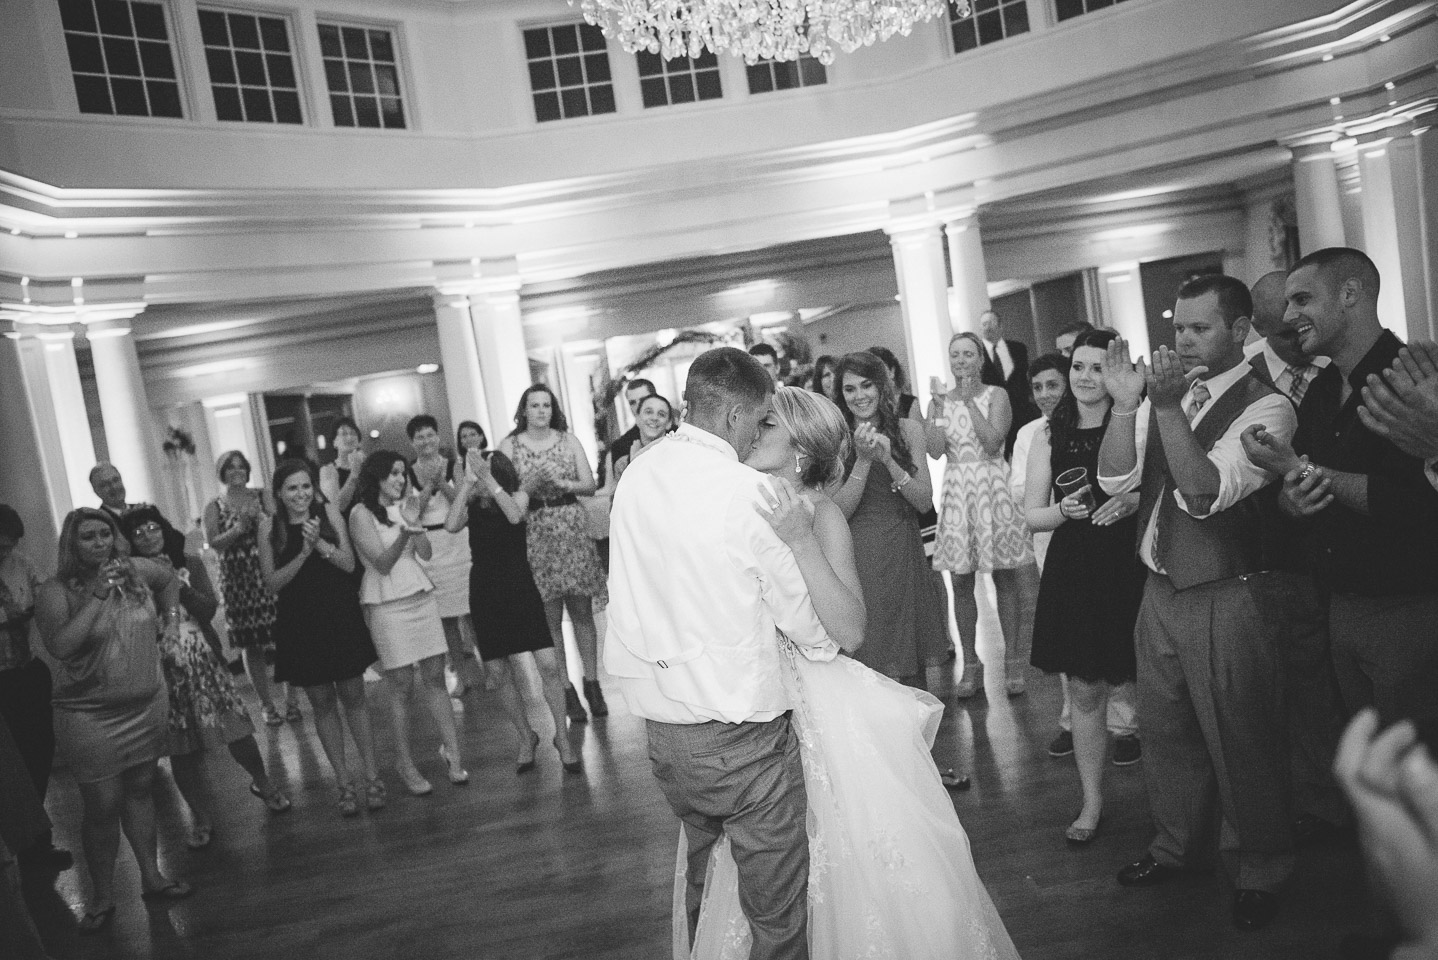 NH Wedding Photographer: dancing at reception